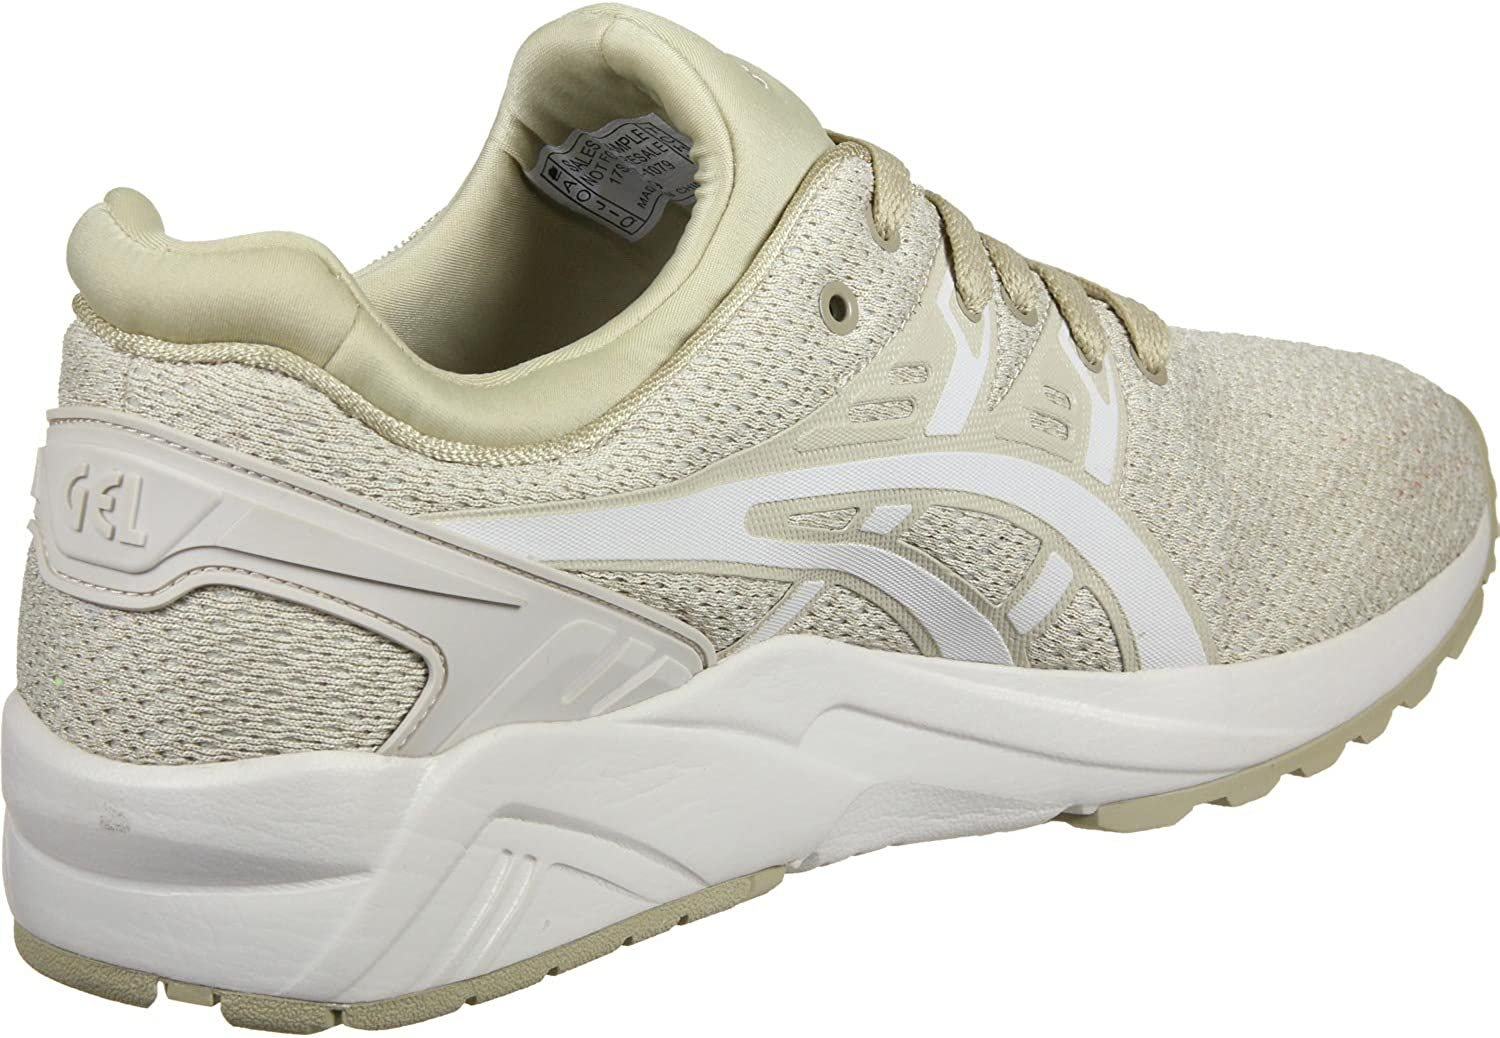 ASICSTIGER Gel-Kayano Trainer EVO shoes